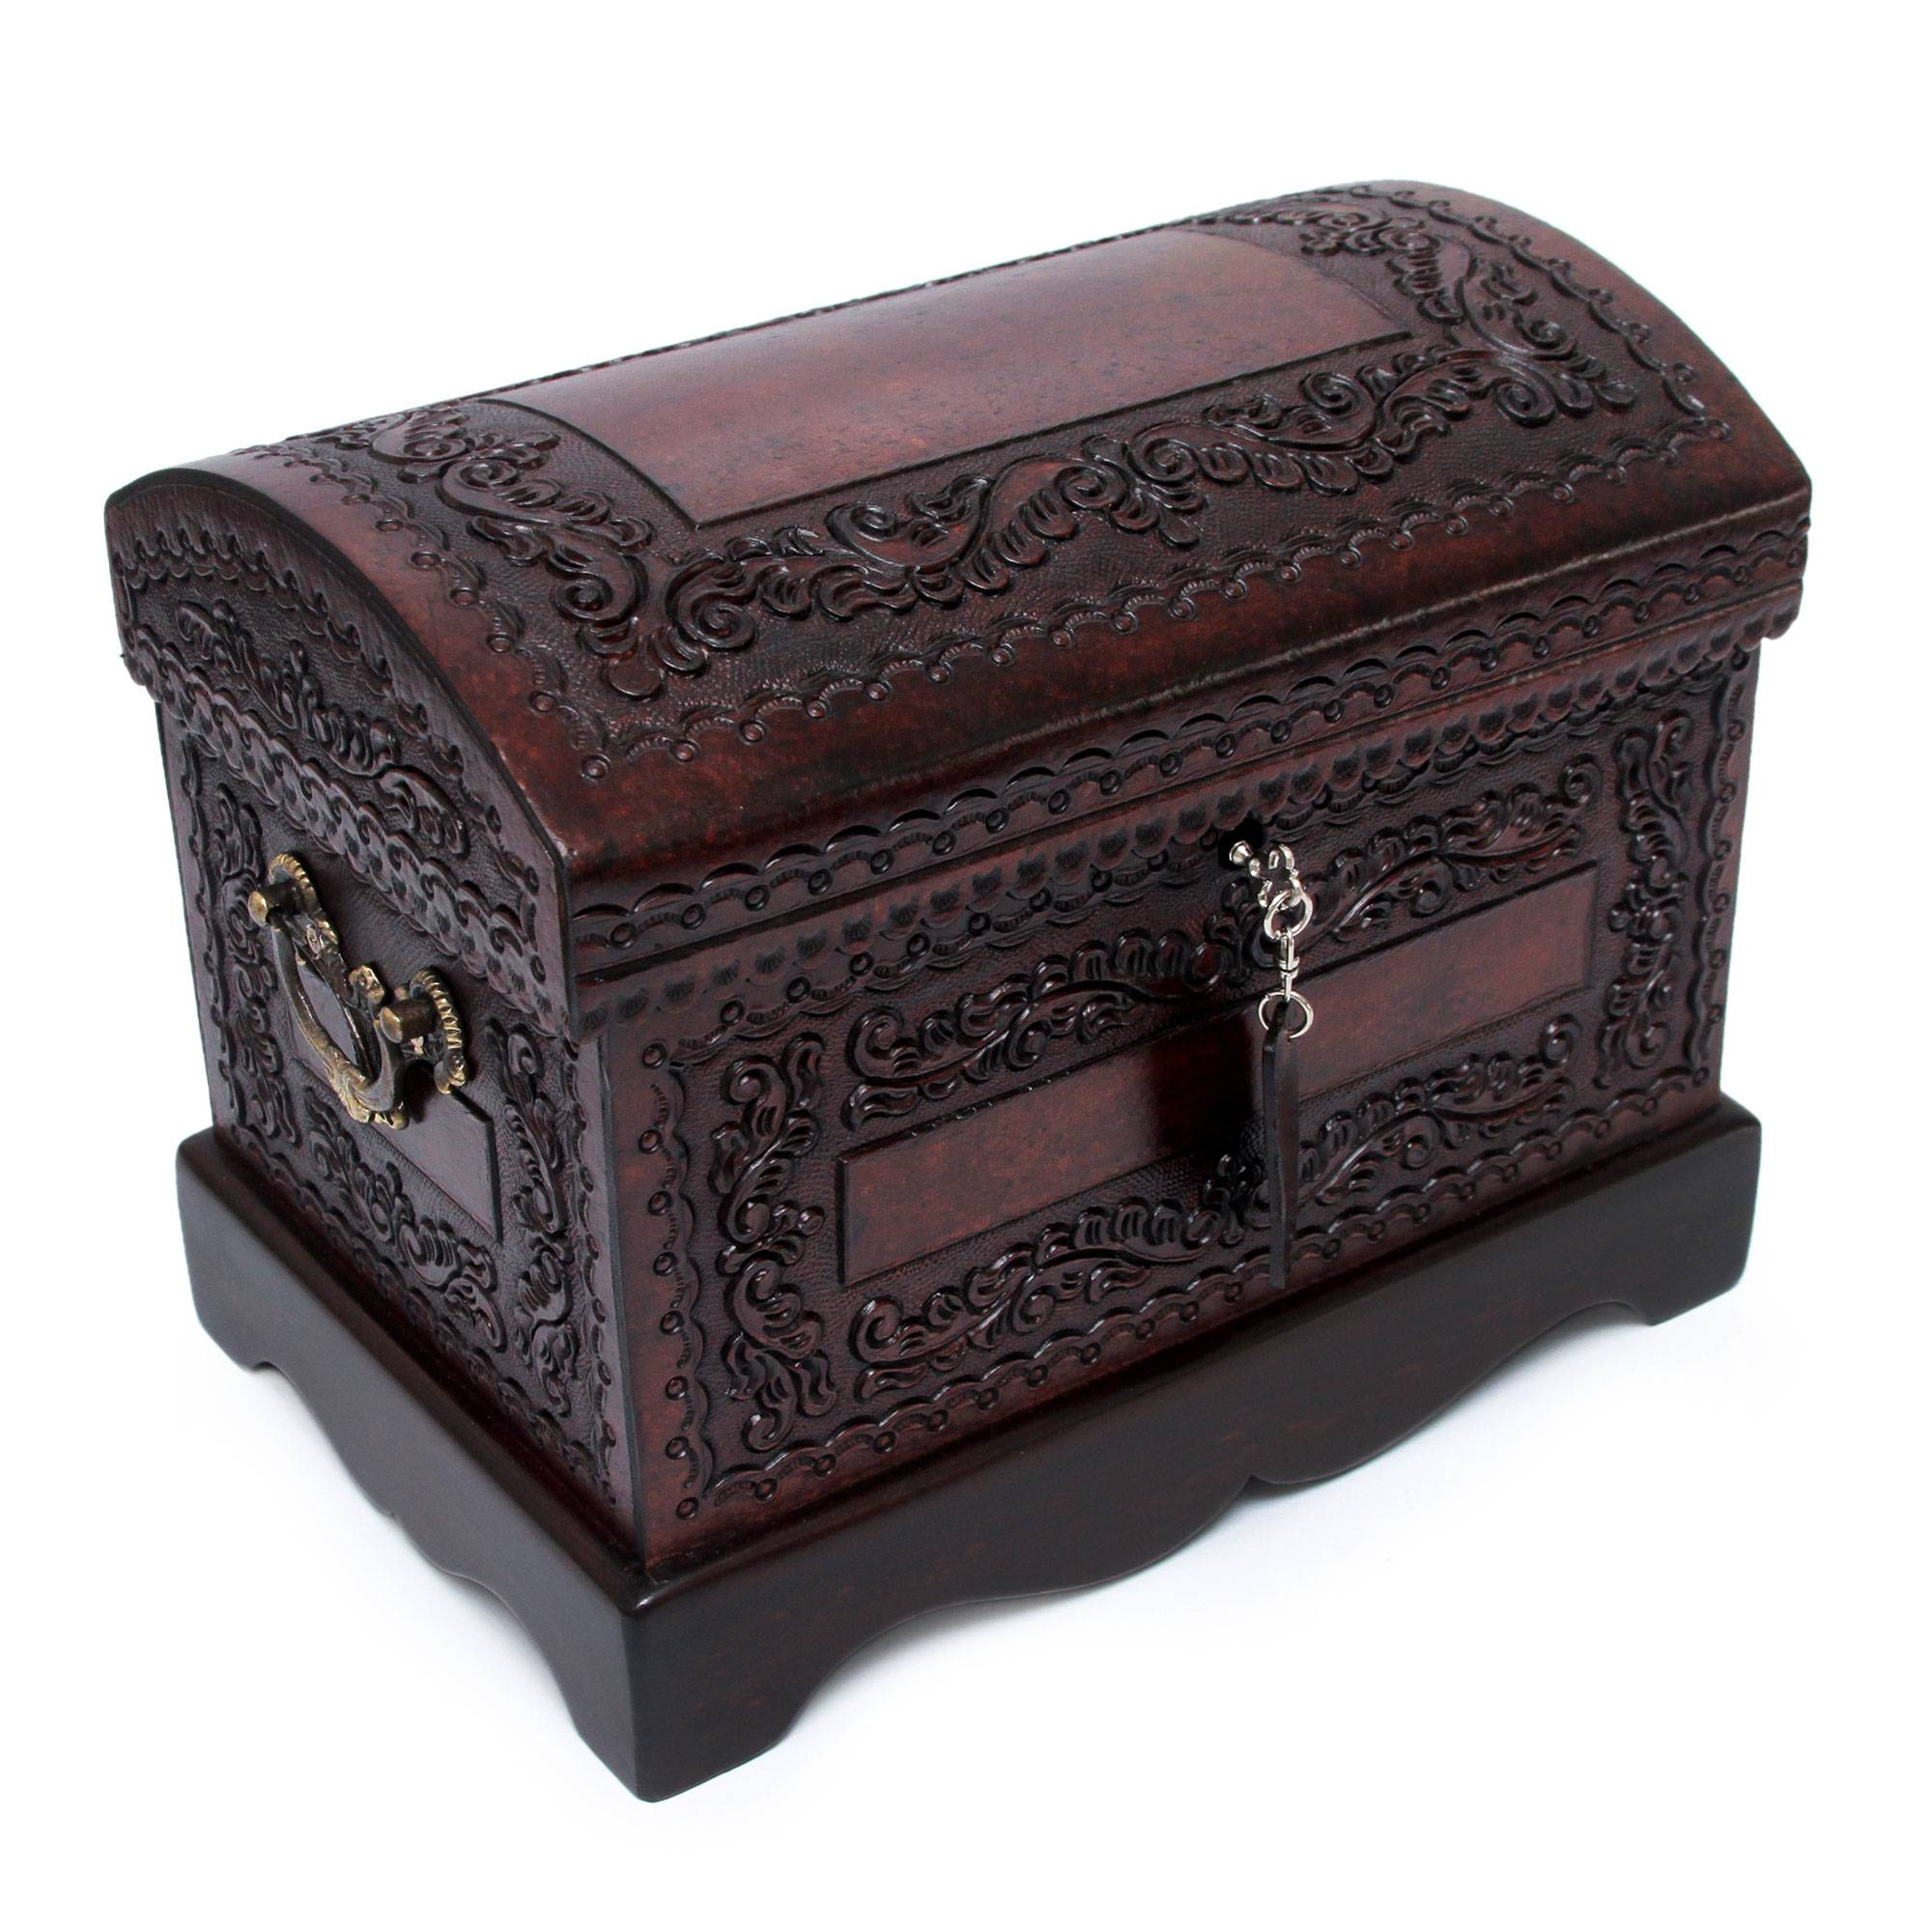 Unicef Market Handmade Jewelry Box Of Leather And Wood From Peru Antique Treasure Chest